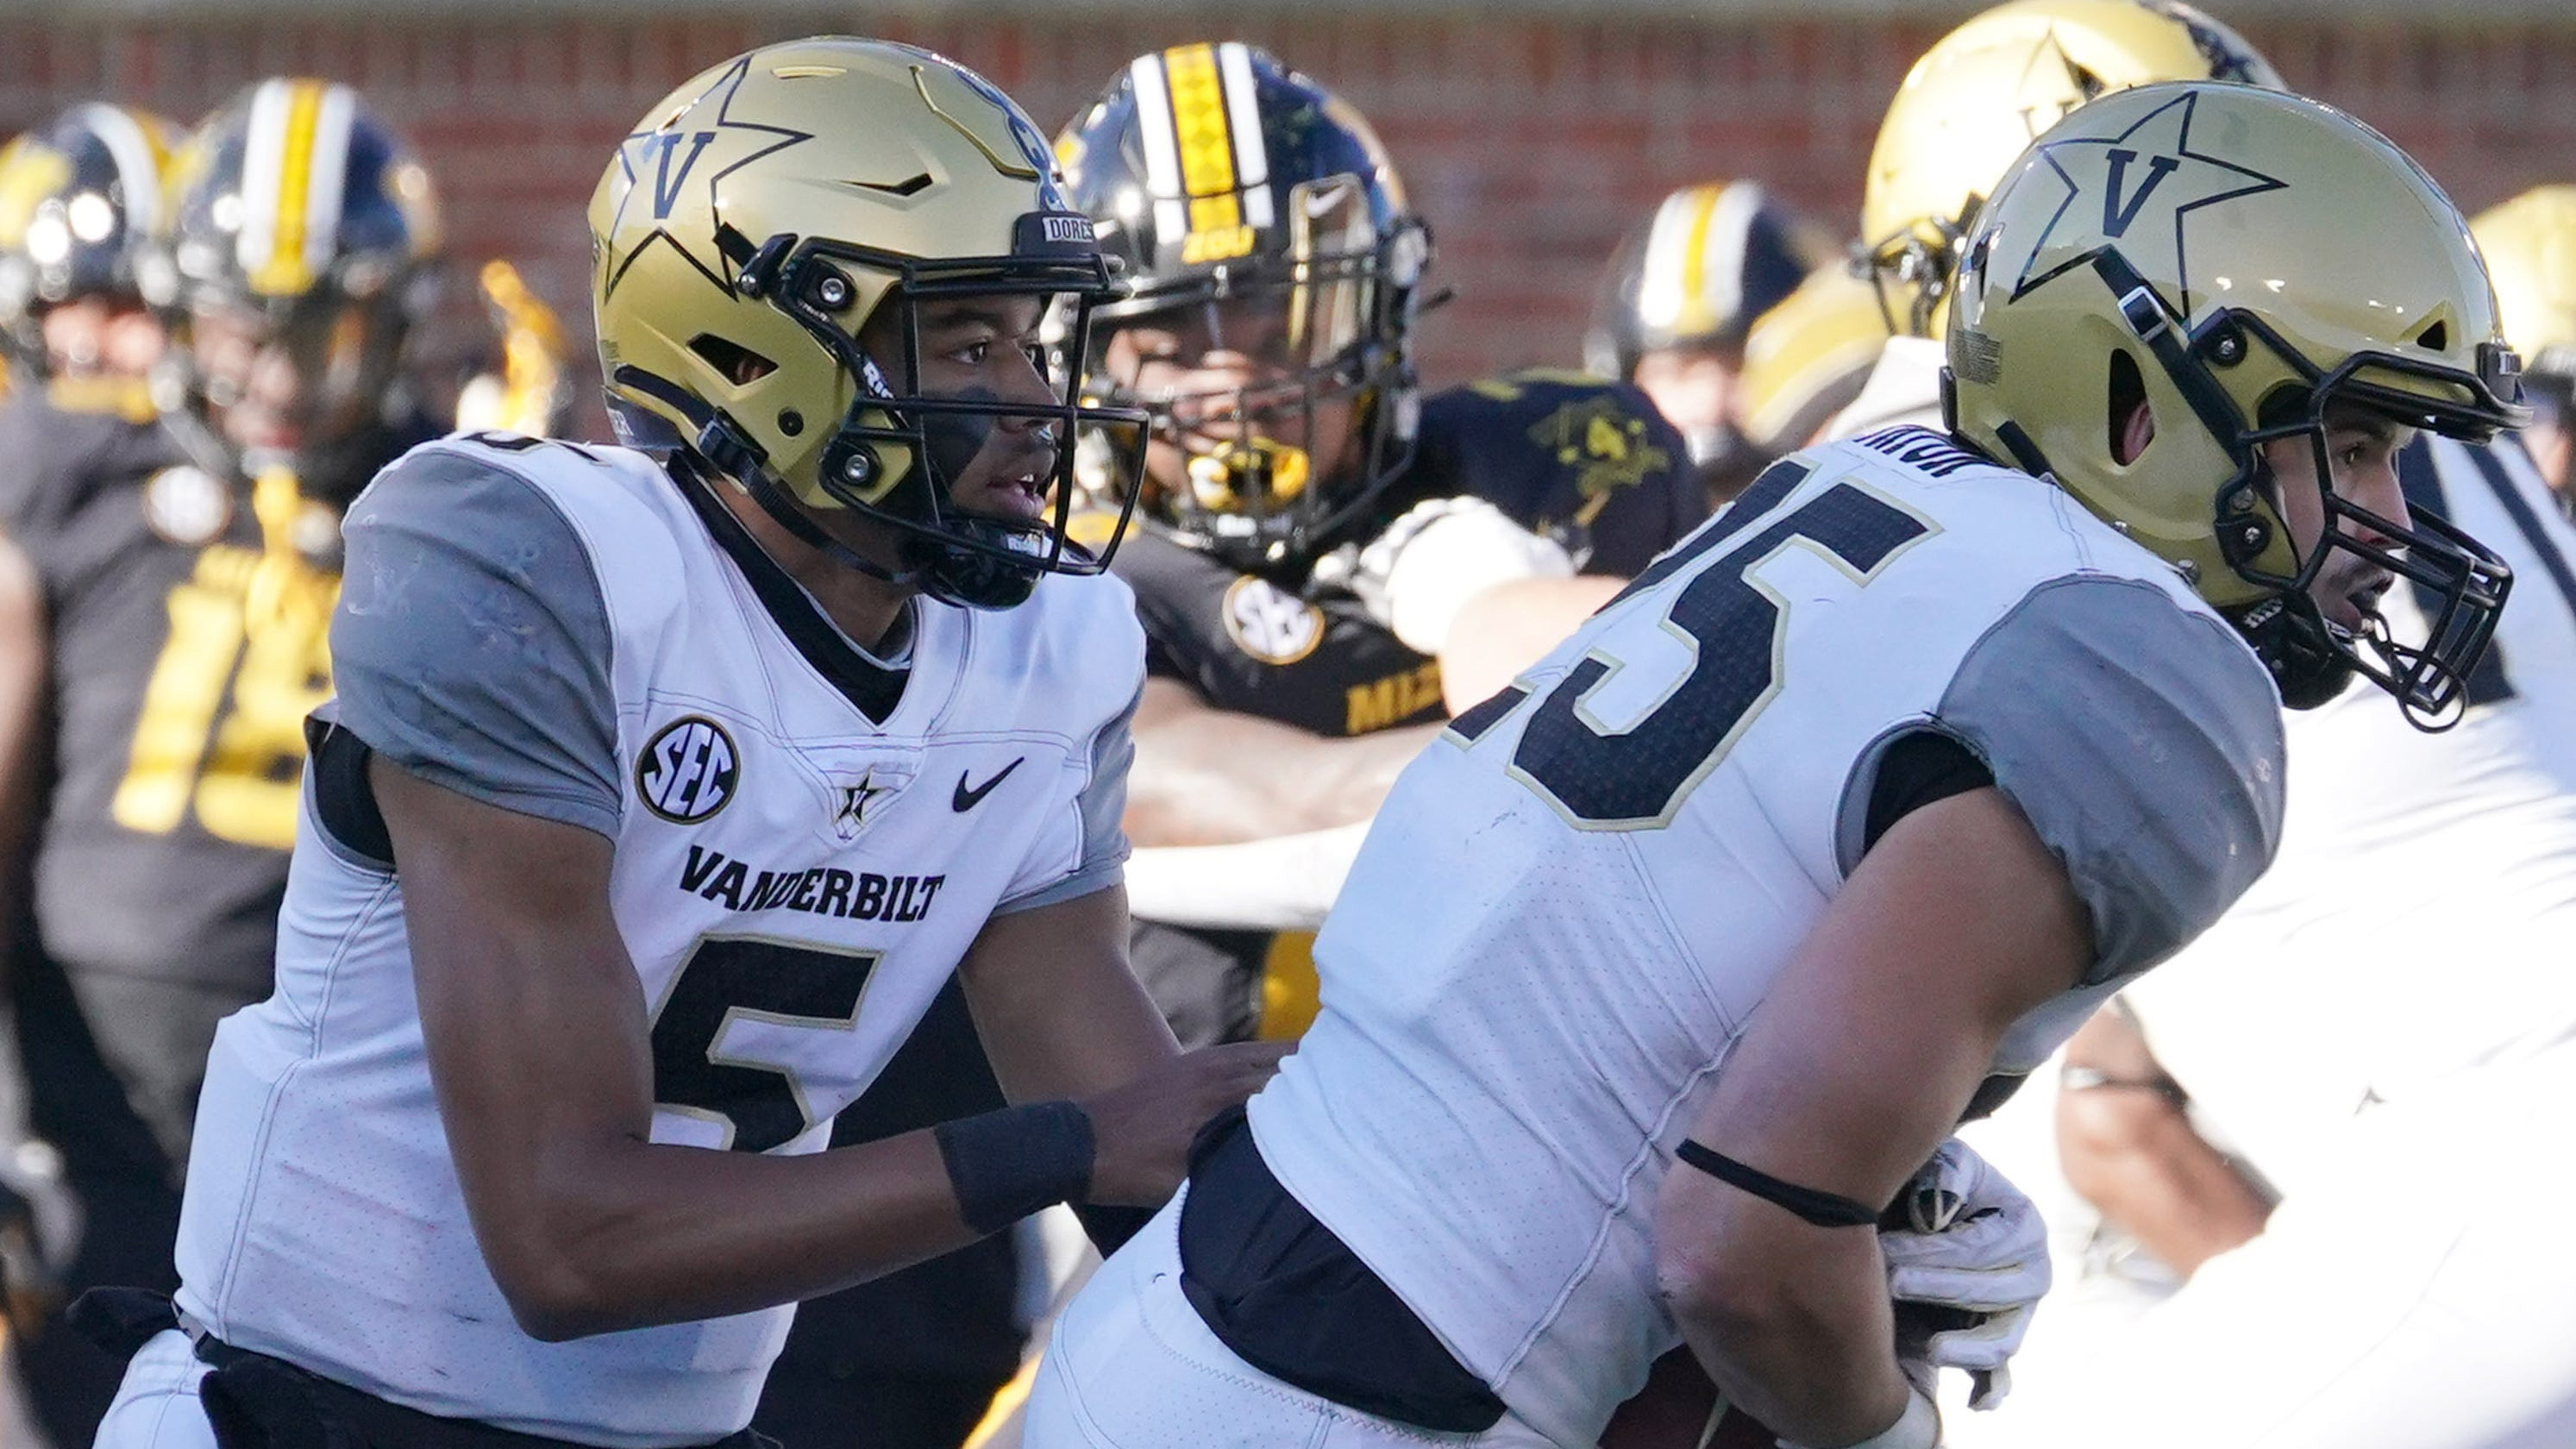 Vanderbilt-Georgia football game postponed due to Commodores' shortage of players